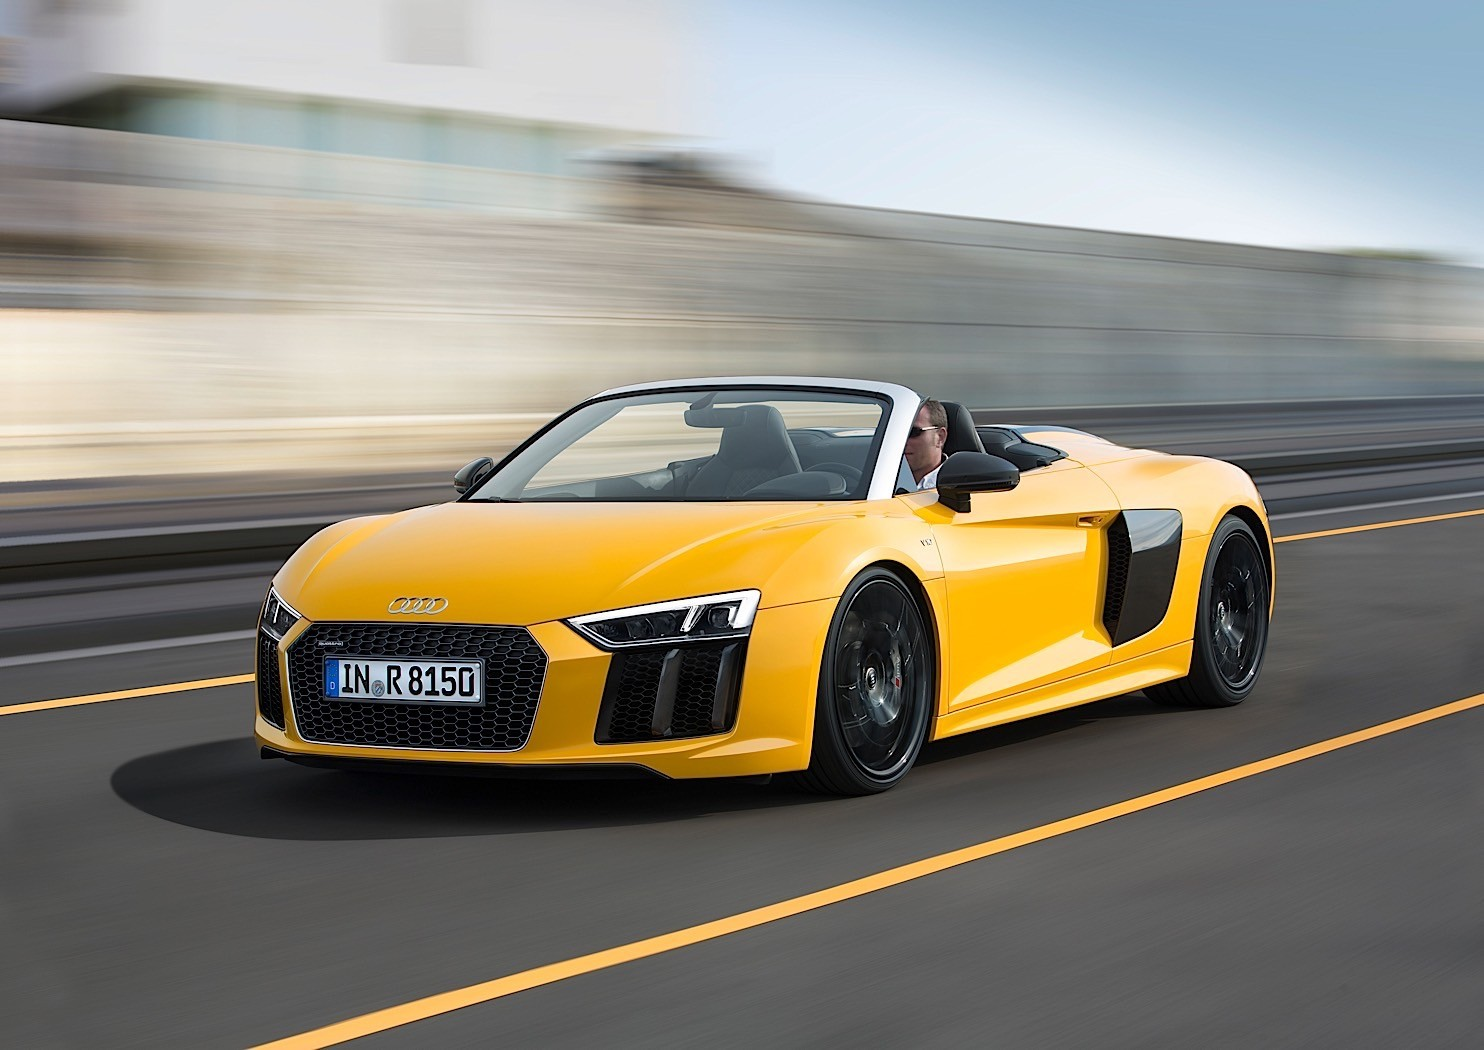 2017 Audi R8 V10 Spyder Launched from $175,100 - autoevolution